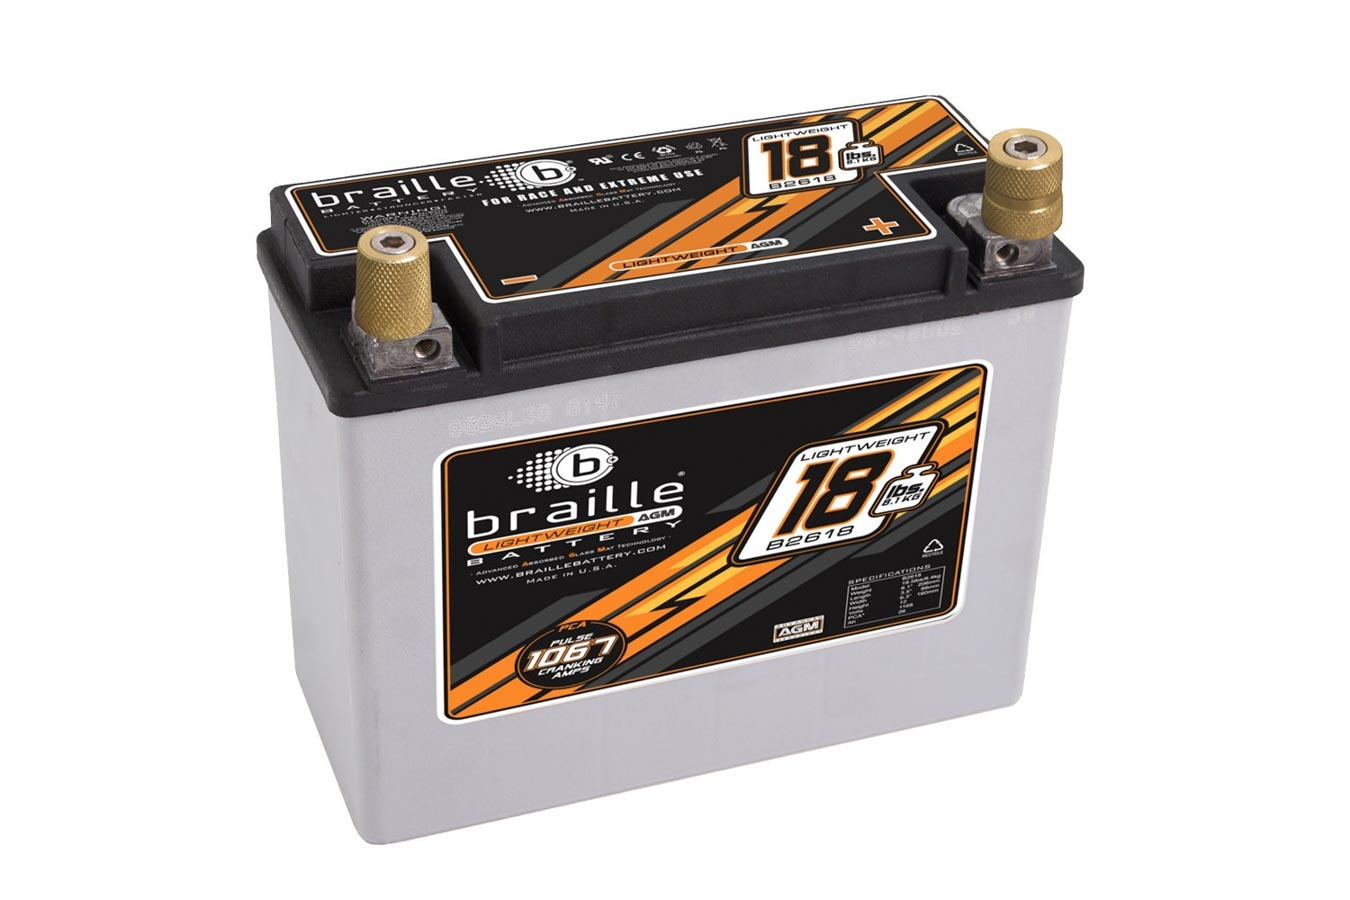 Braille Auto Battery B2618 Battery, Lightweight, AGM, 12V, 1168 Pulse Cranking Amp, Threaded Terminals, 8.10 in L x 6.30 in H x 3.50 in W, Each